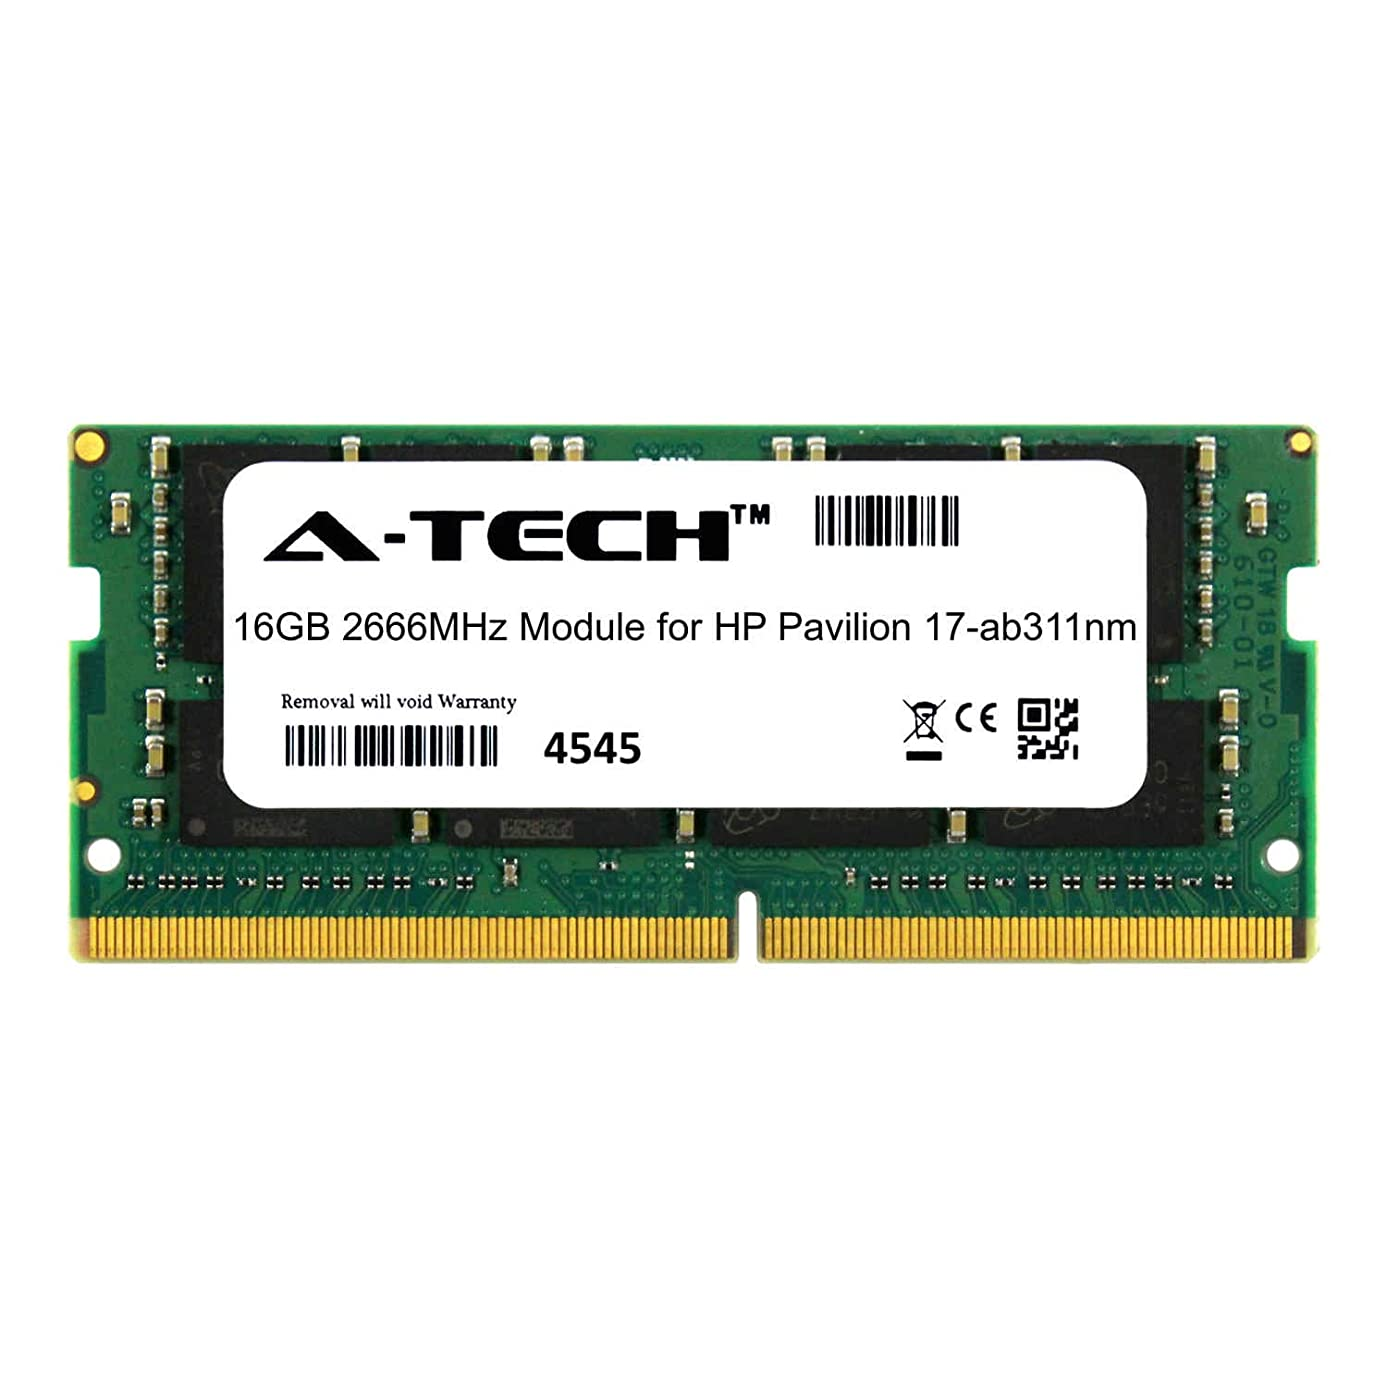 A-Tech 16GB Module for HP Pavilion 17-ab311nm Laptop & Notebook Compatible DDR4 2666Mhz Memory Ram (ATMS310535A25832X1)